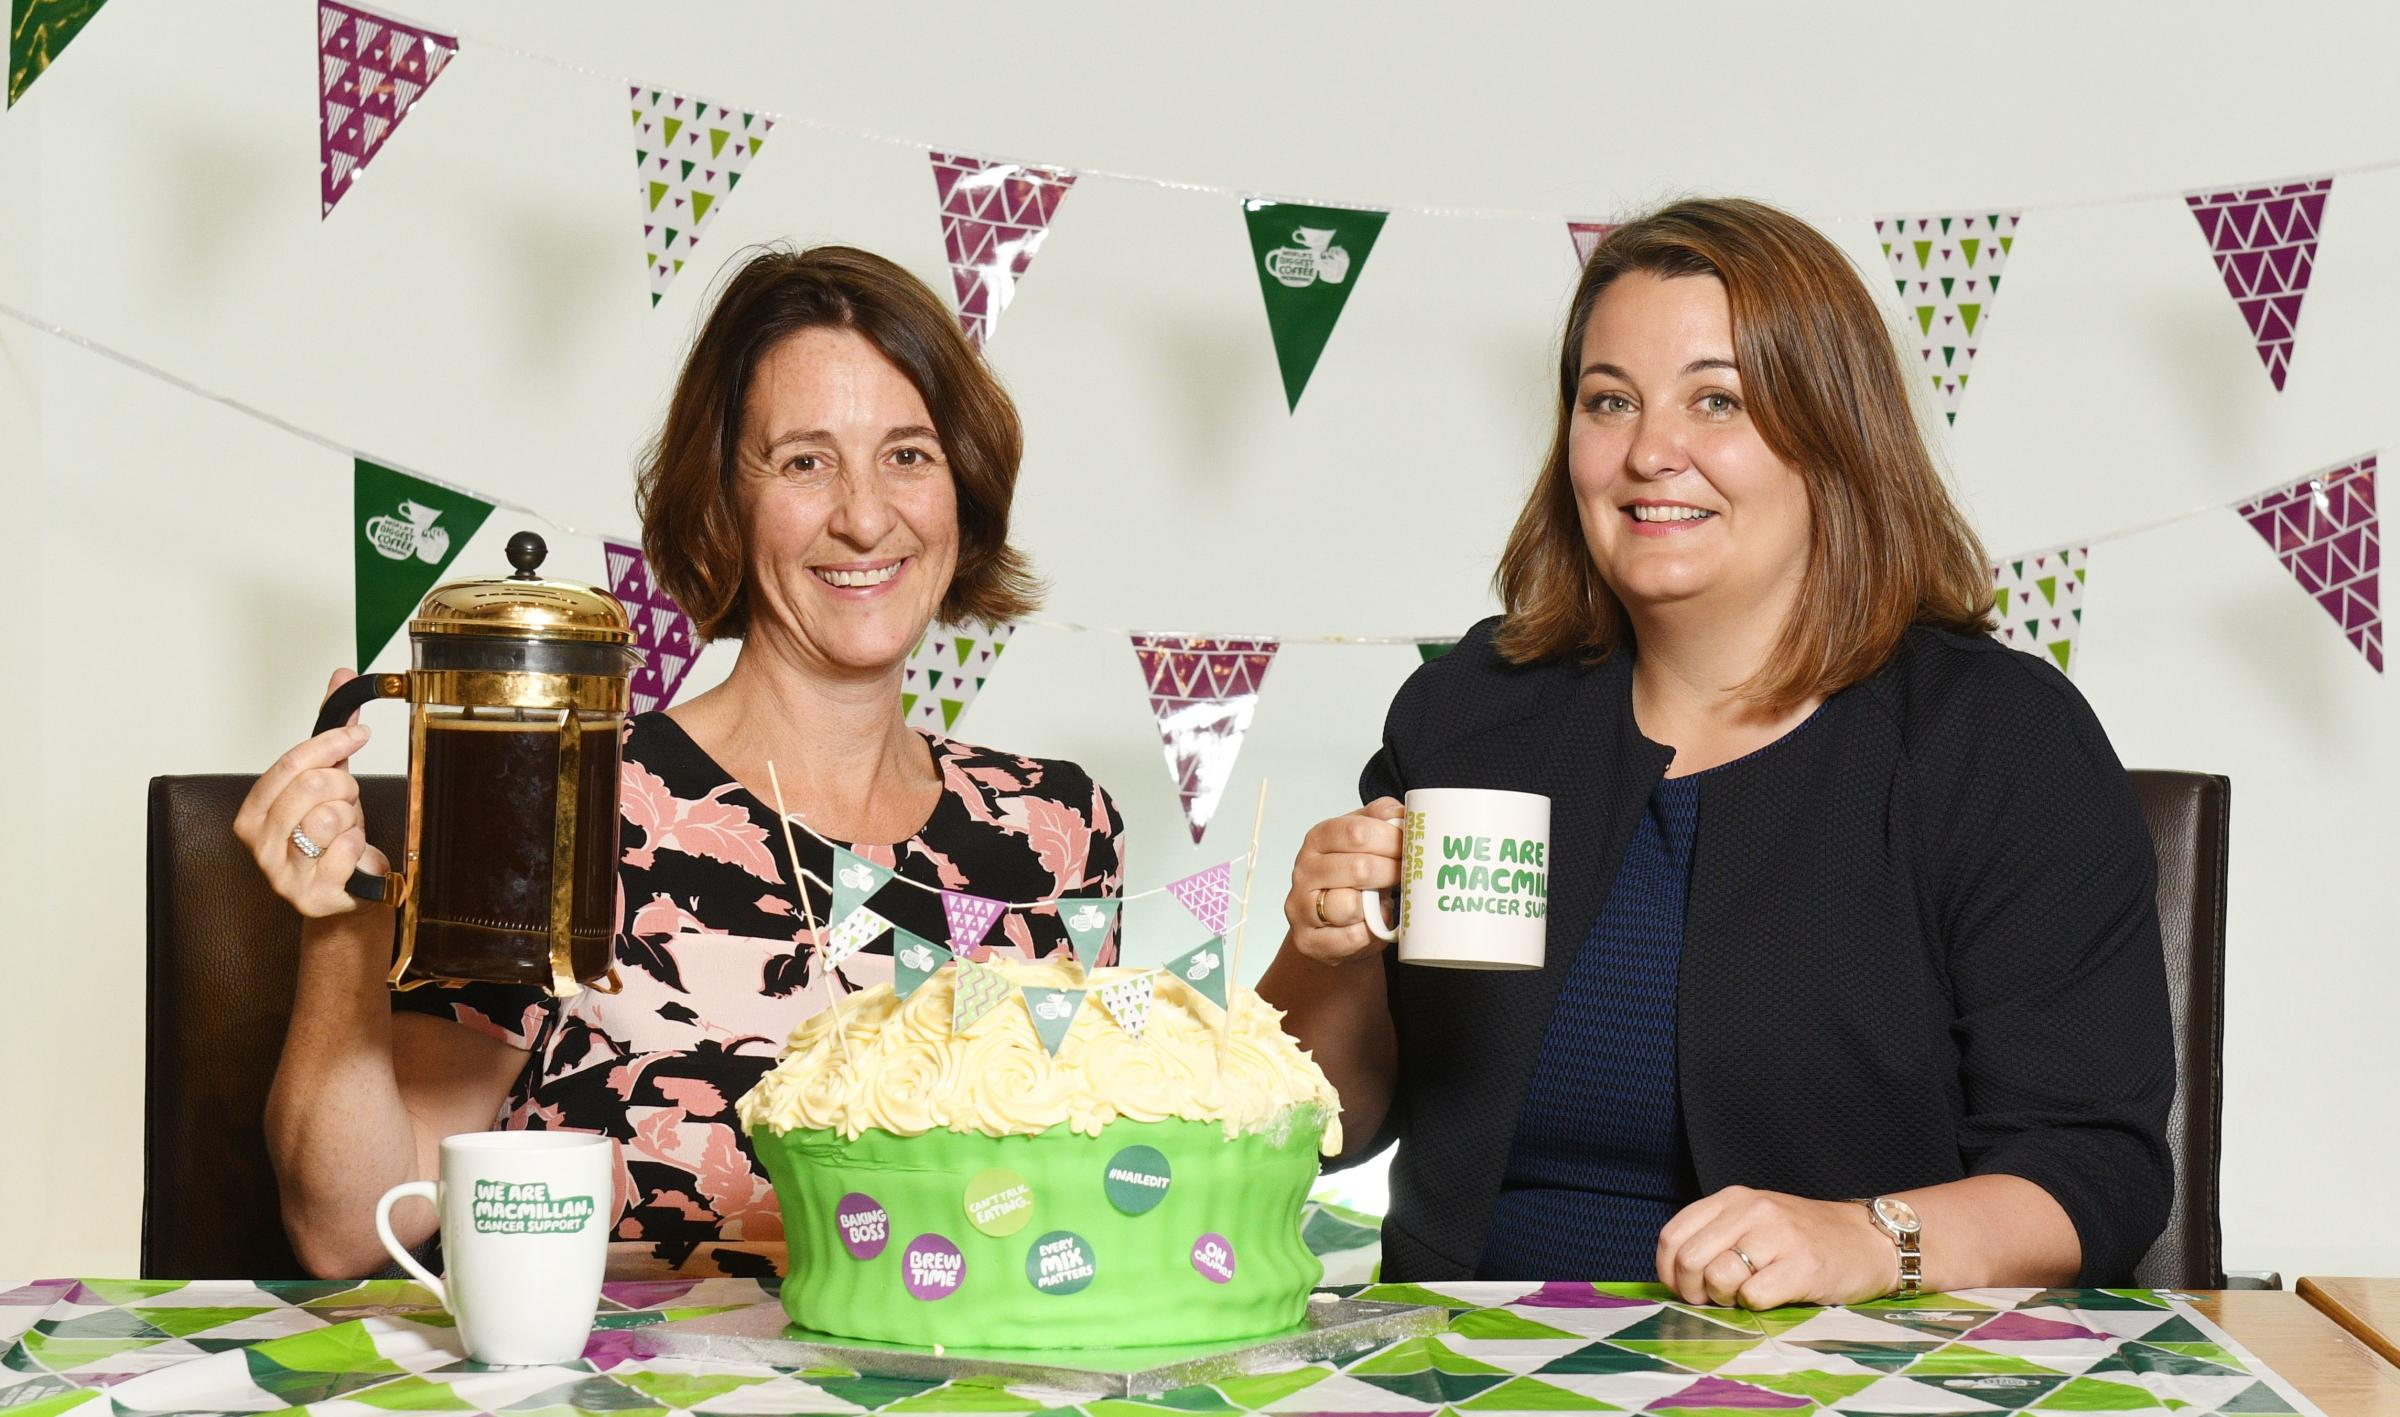 Big coffee morning for cancer charity hosted in Fullarton hub – Irvine Times